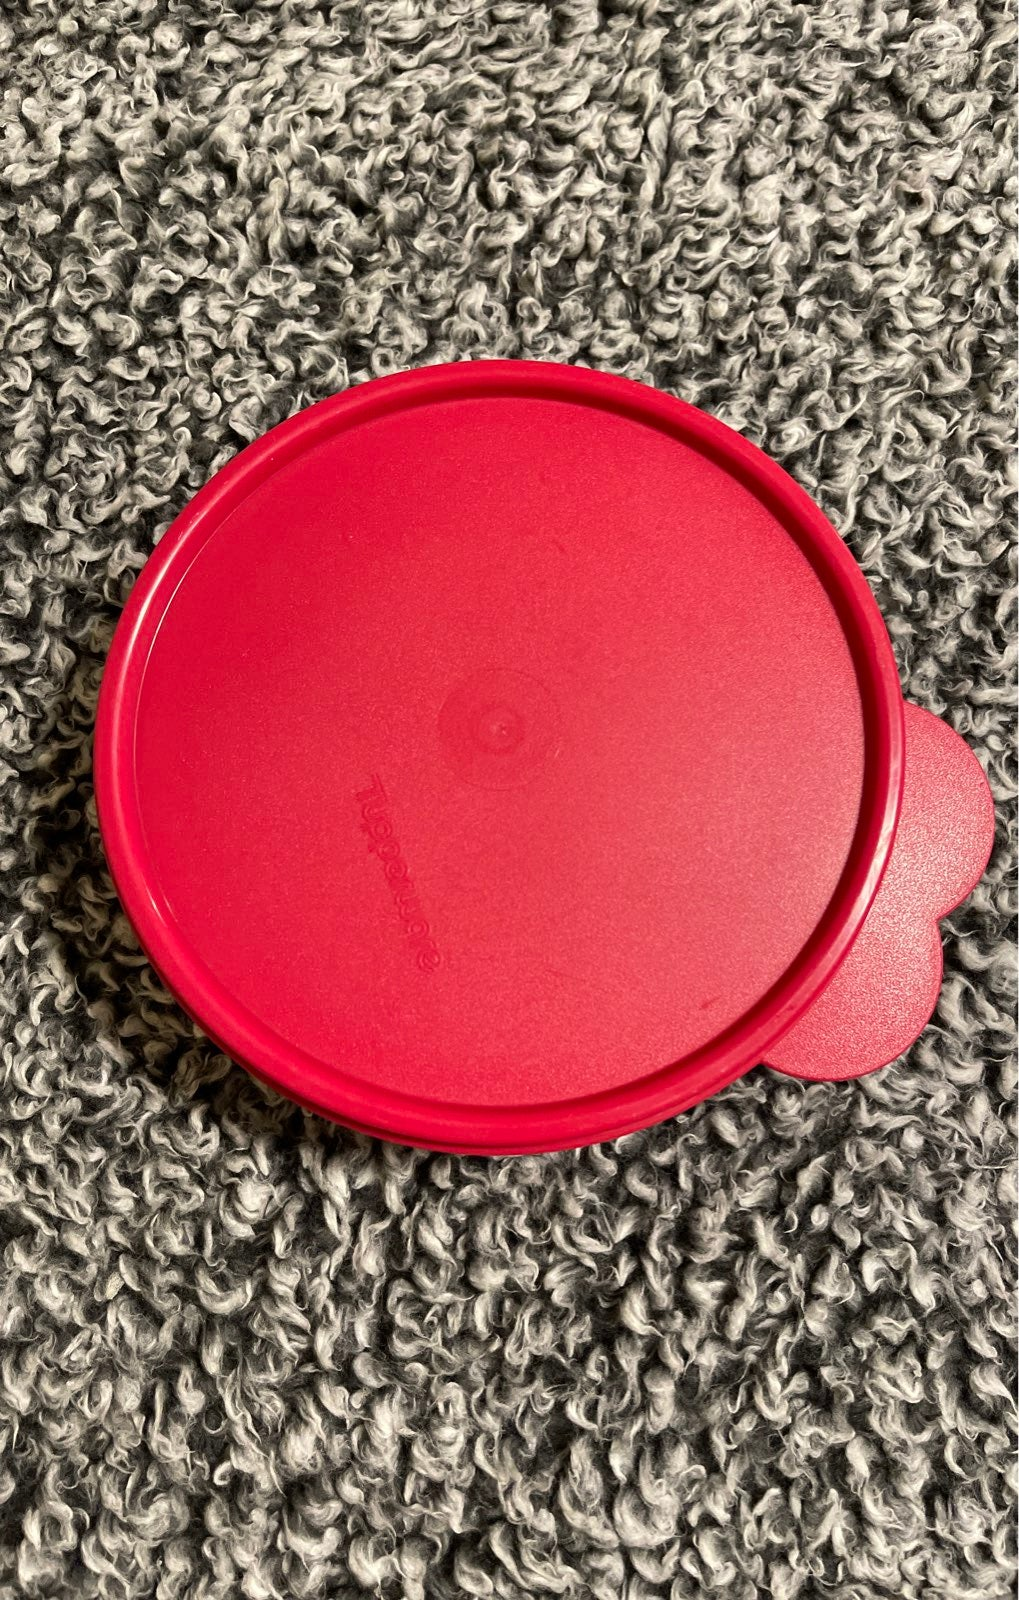 Tupperware Red Sparkle Bowl with Lid